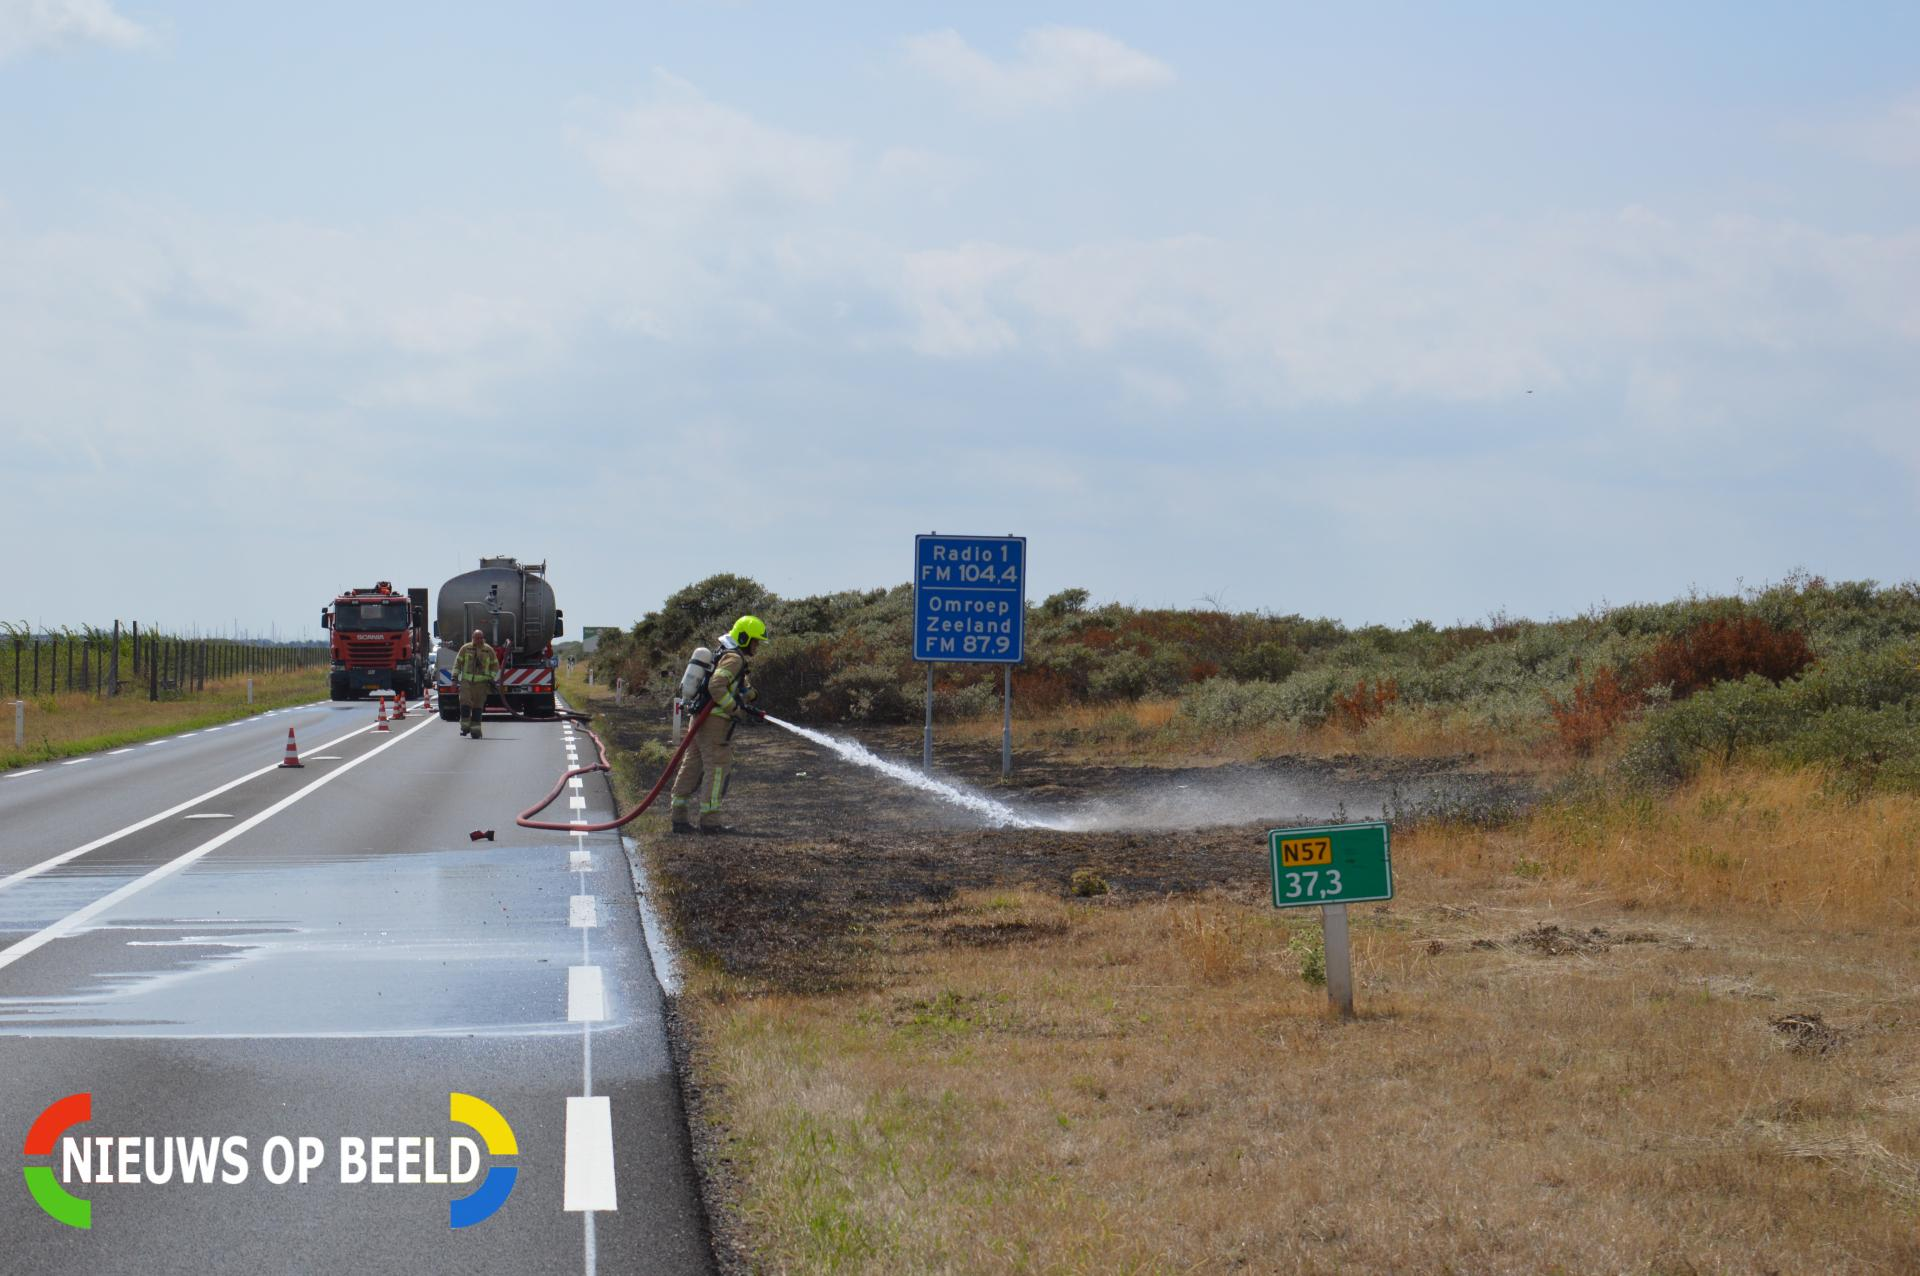 Grote duinbrand langs Brouwersdam N57 Ouddorp